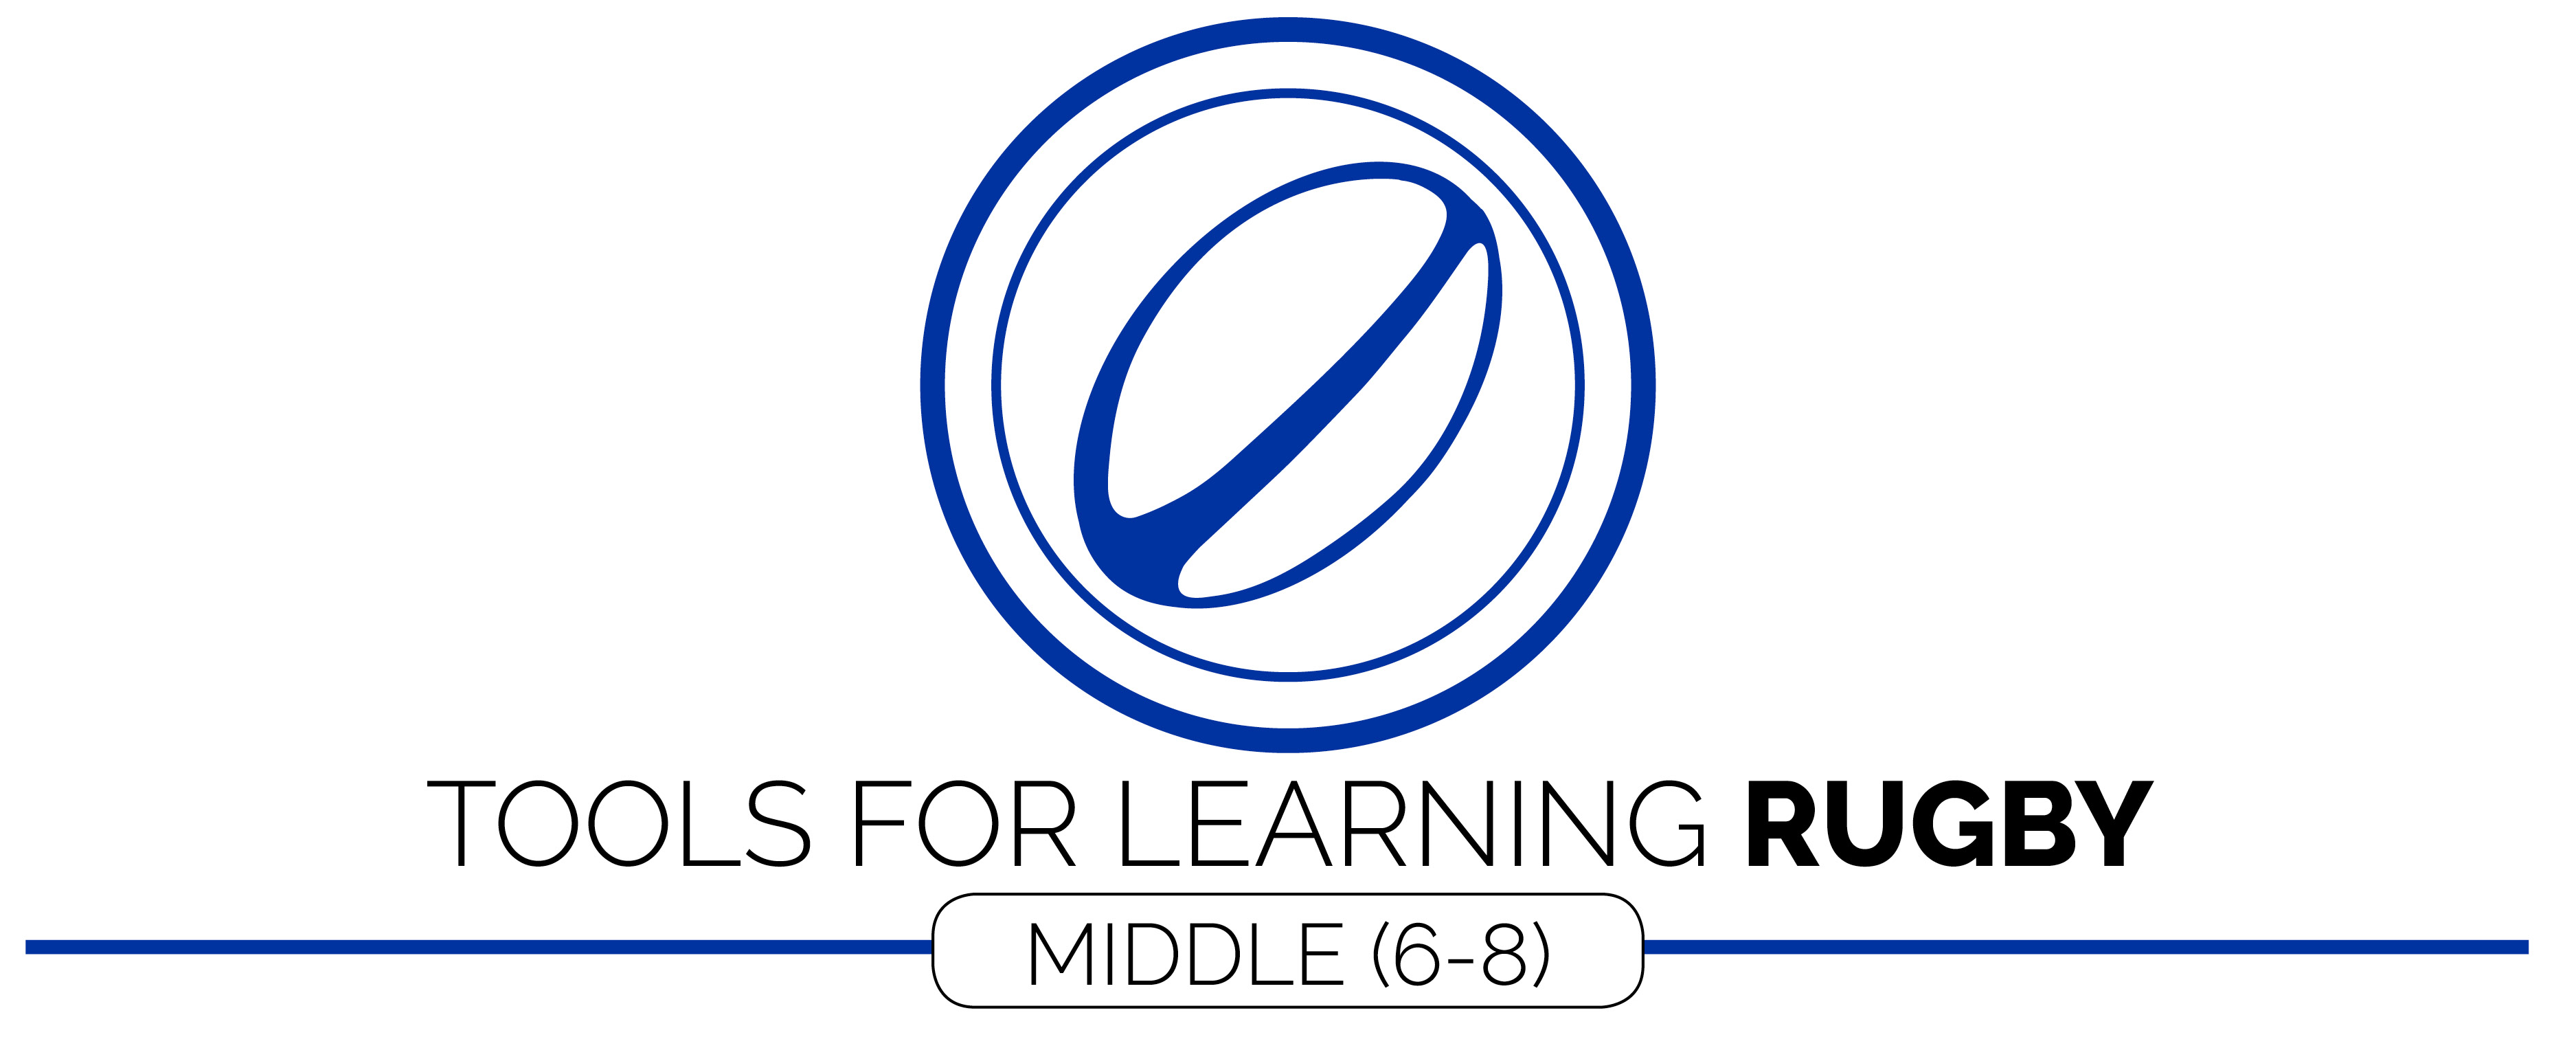 Jabs Farm Lessons Cool rugby(middle school) – open physical education curriculum